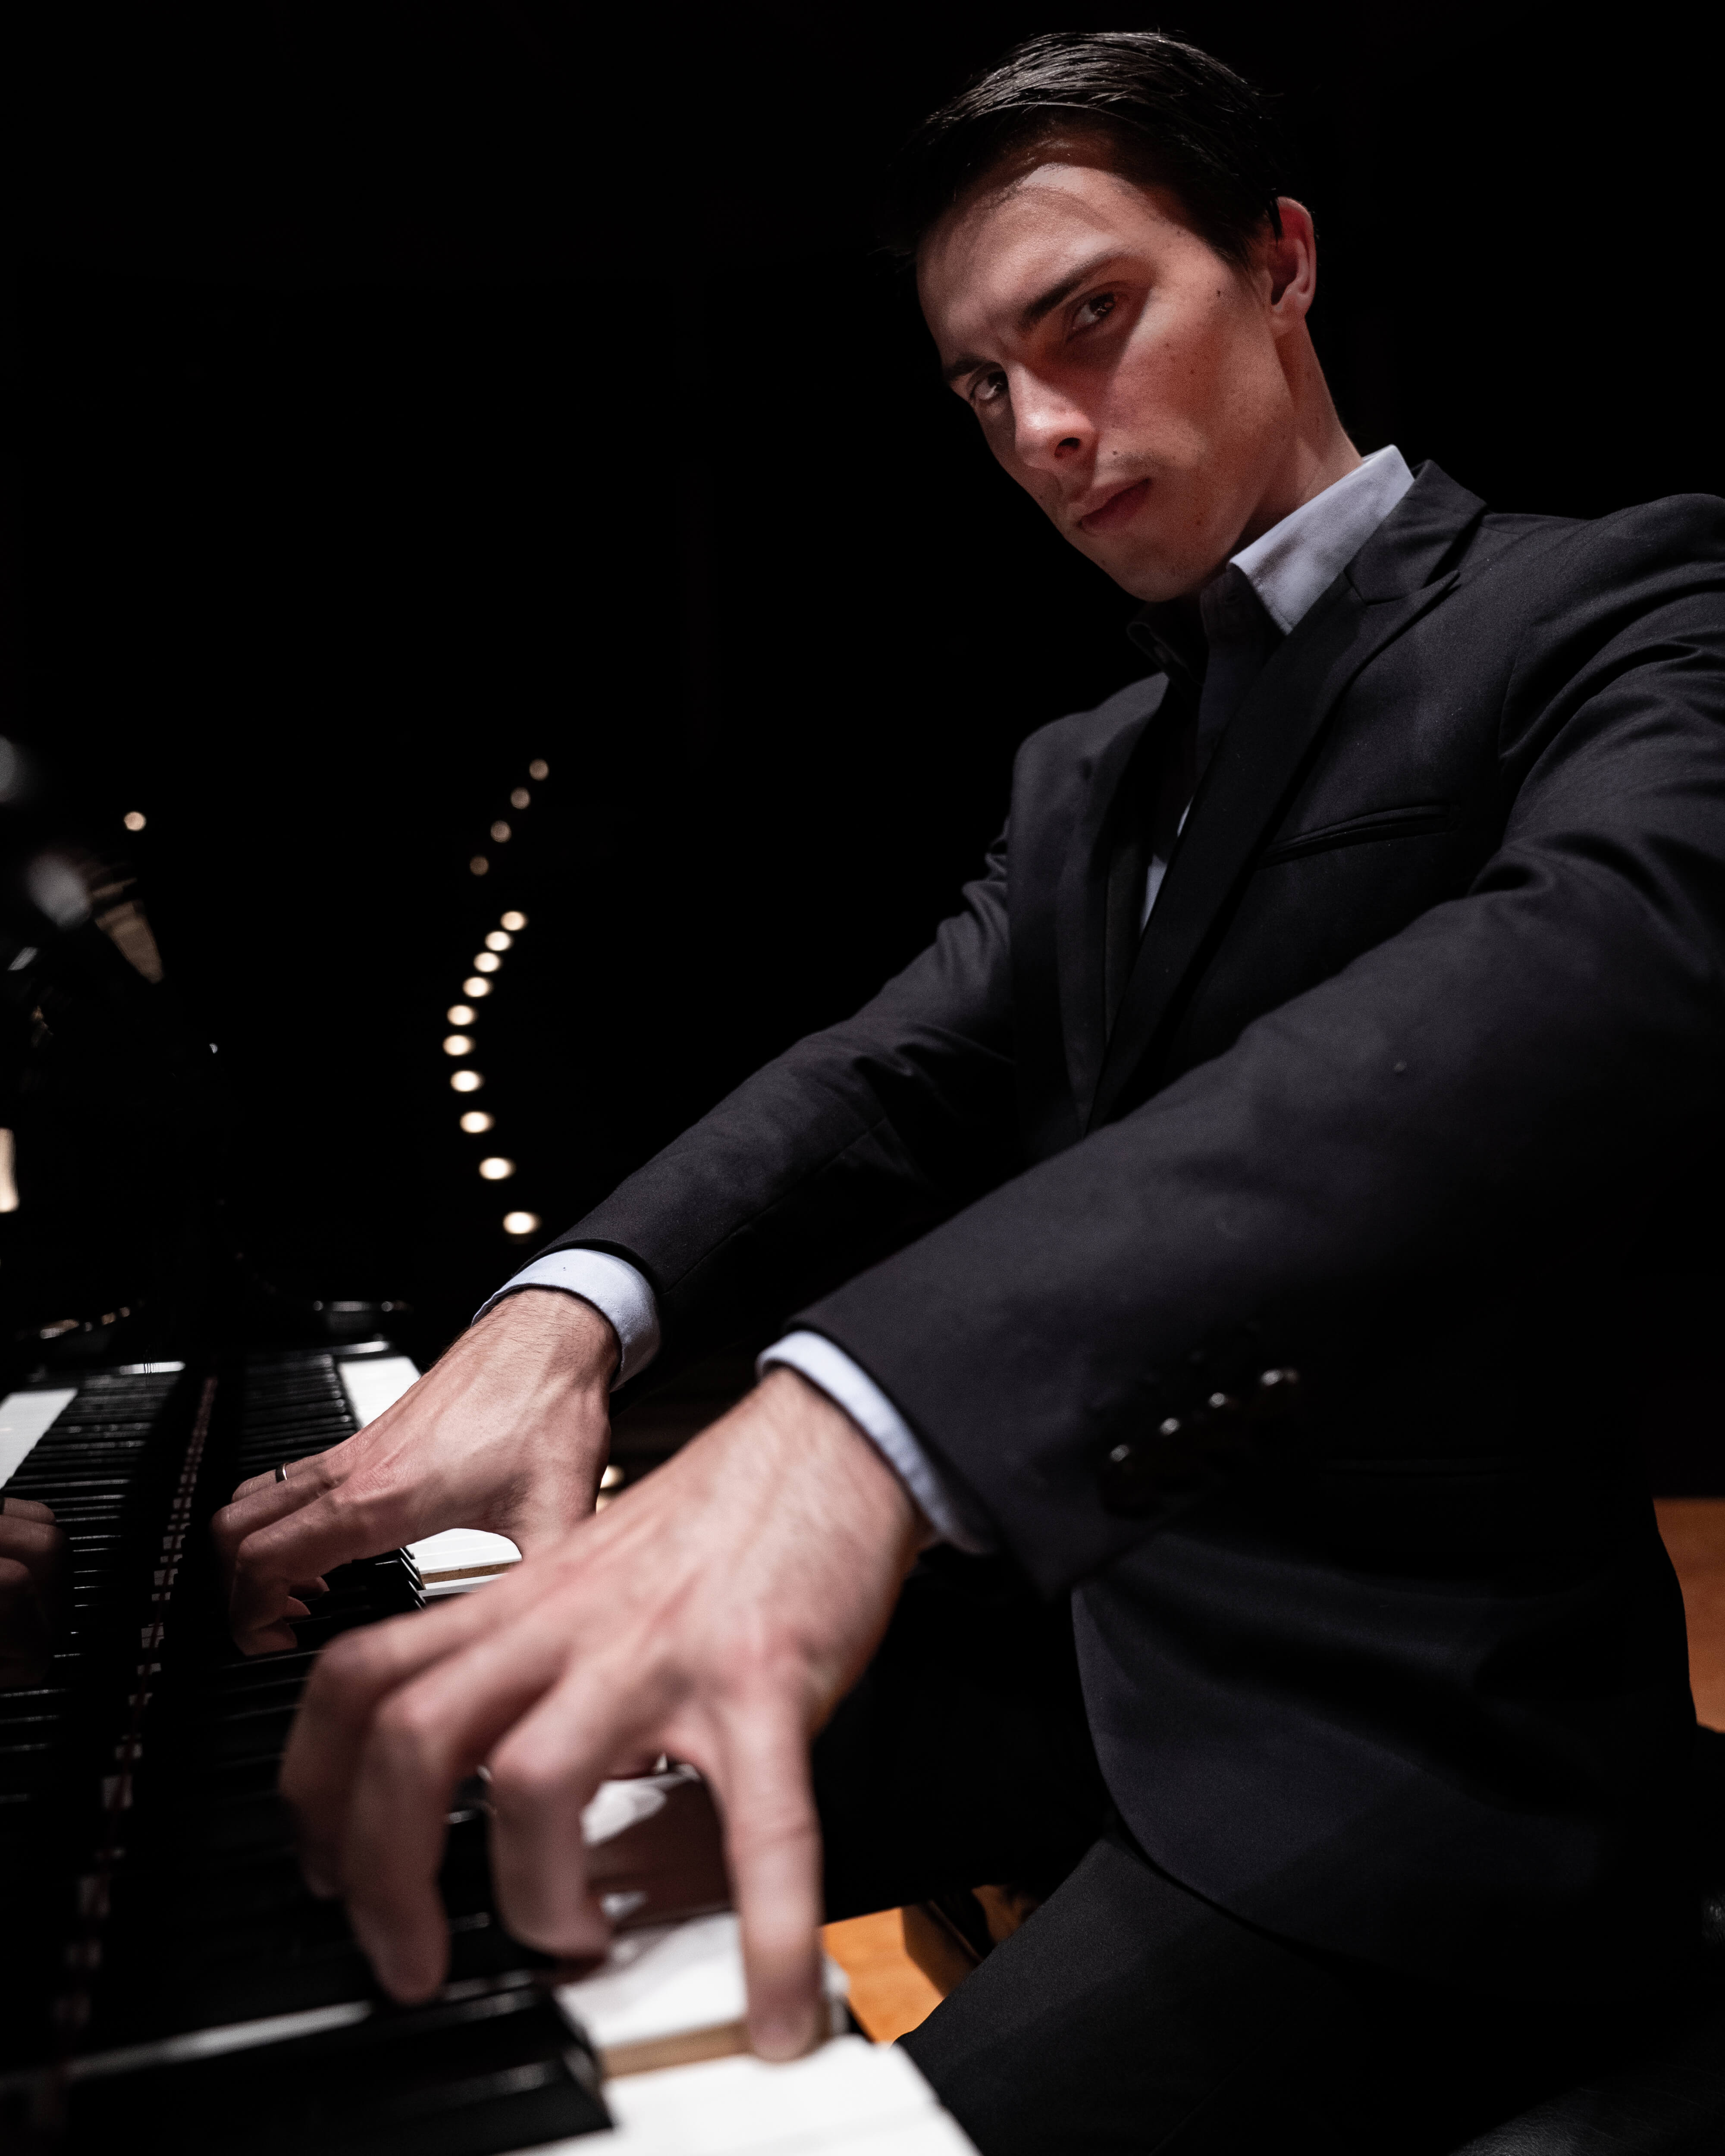 A pianist with curled fingers playing the piano and looking at the camera.